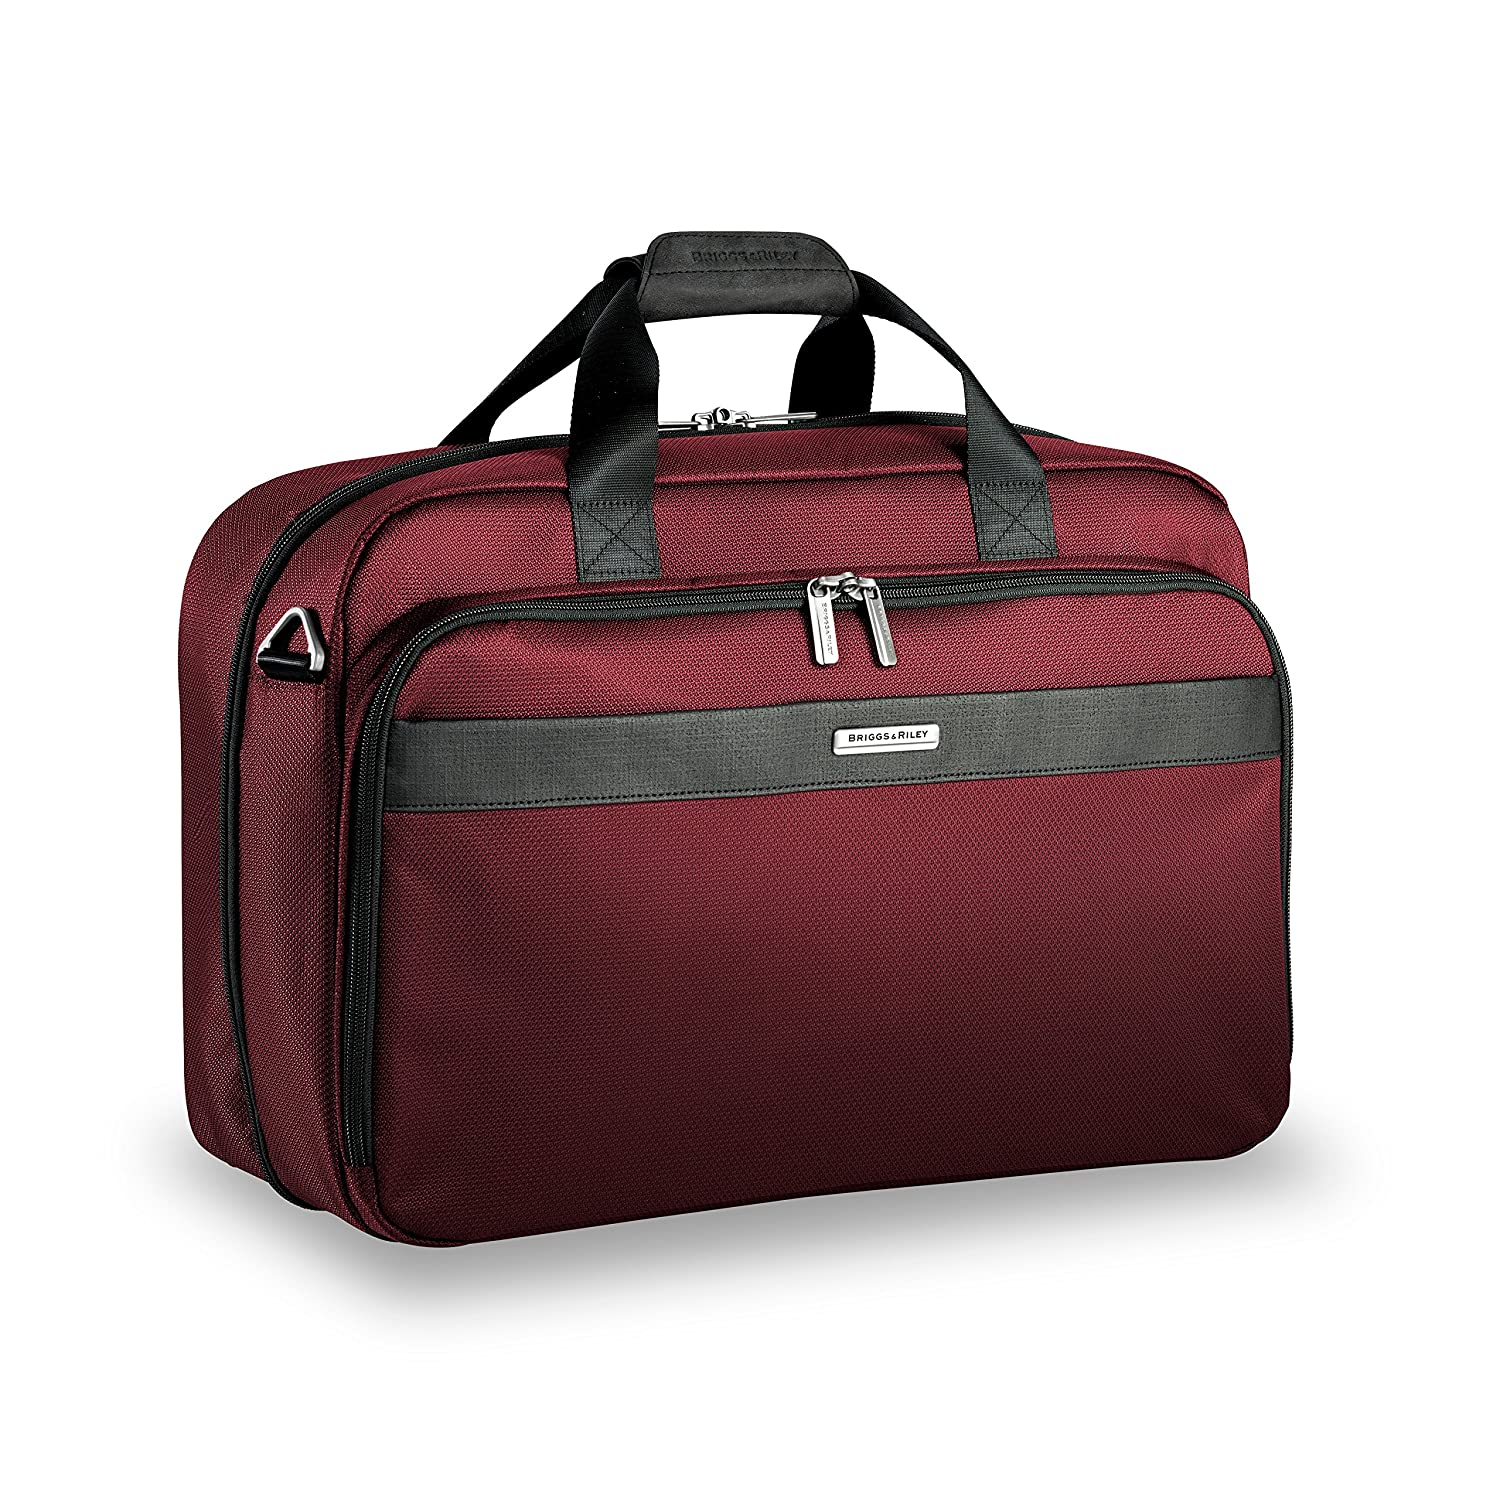 palermo dp cabins on cabin amazon carry litres clothing max bag black luggage detachable com toiletry